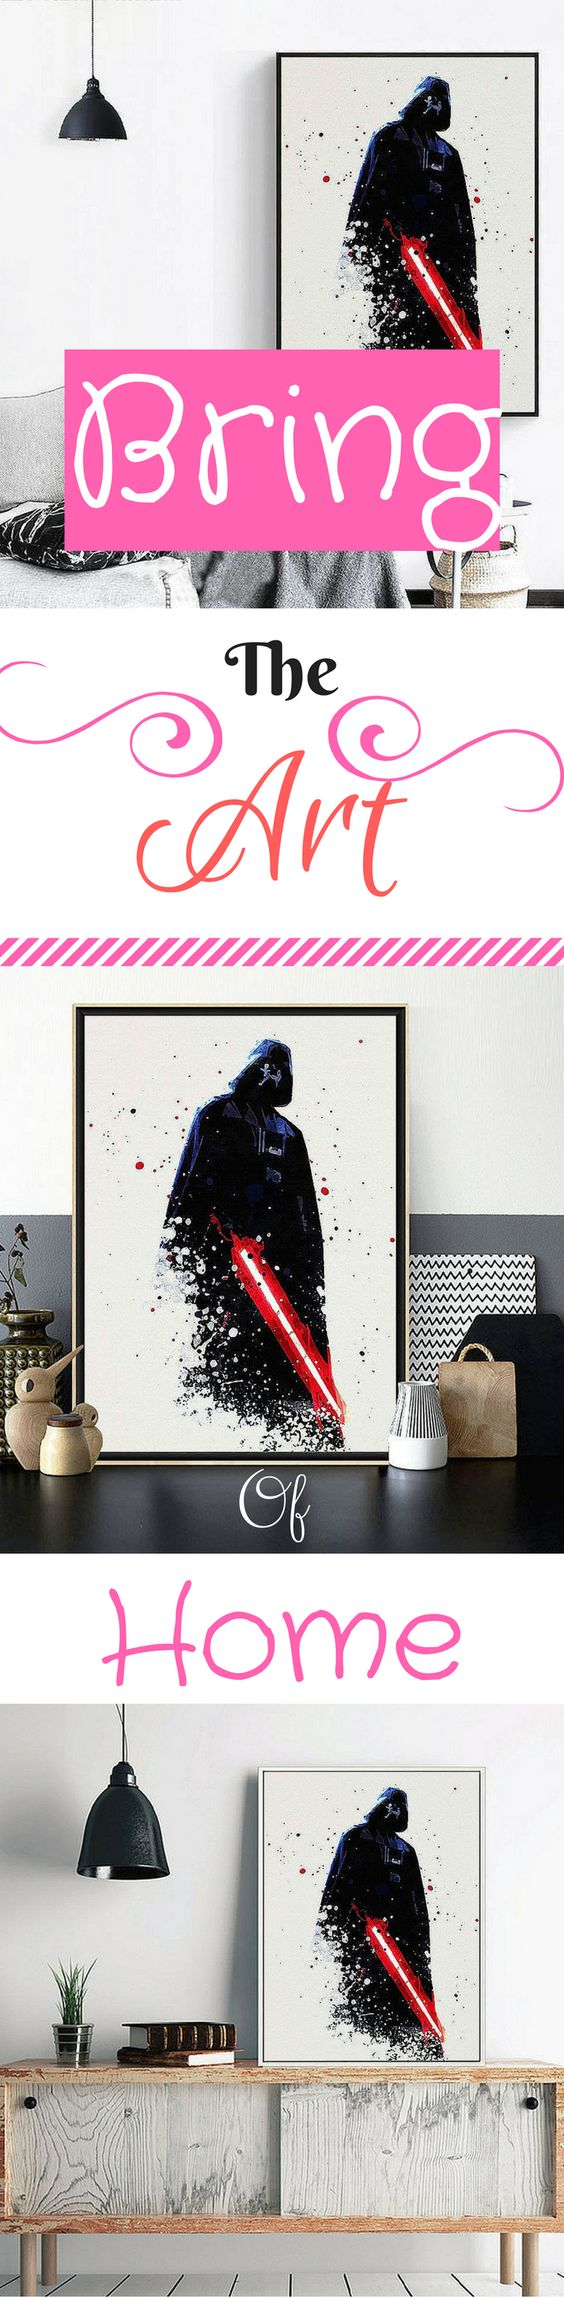 Star Wars Canvas, star wars art, star wars painting, star wars canvas art